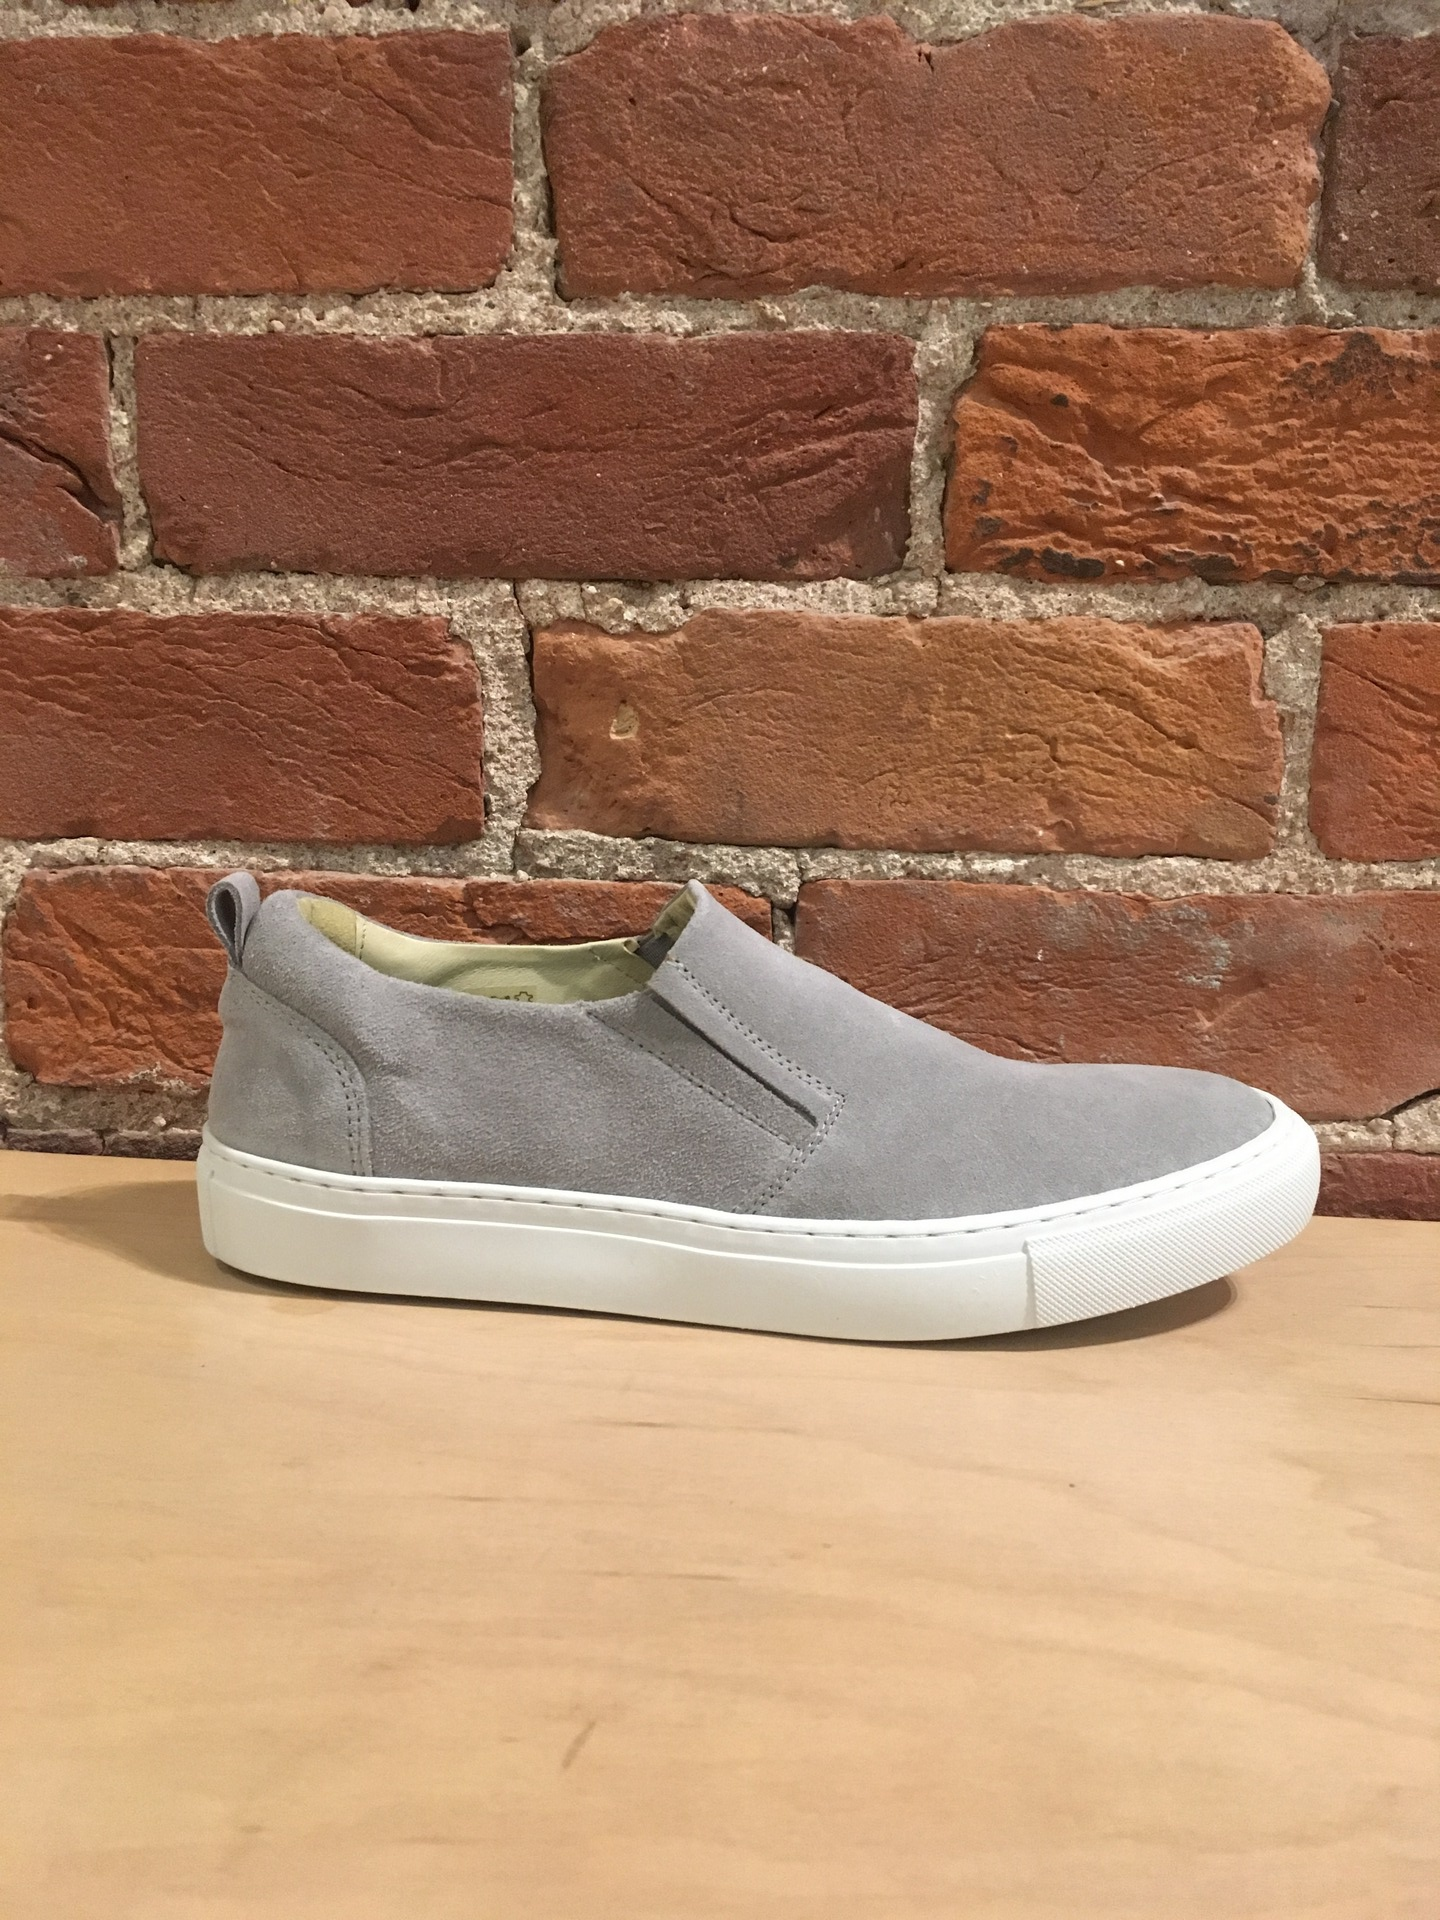 SHOE THE BEAR - ADAM S IN LIGHT GREY